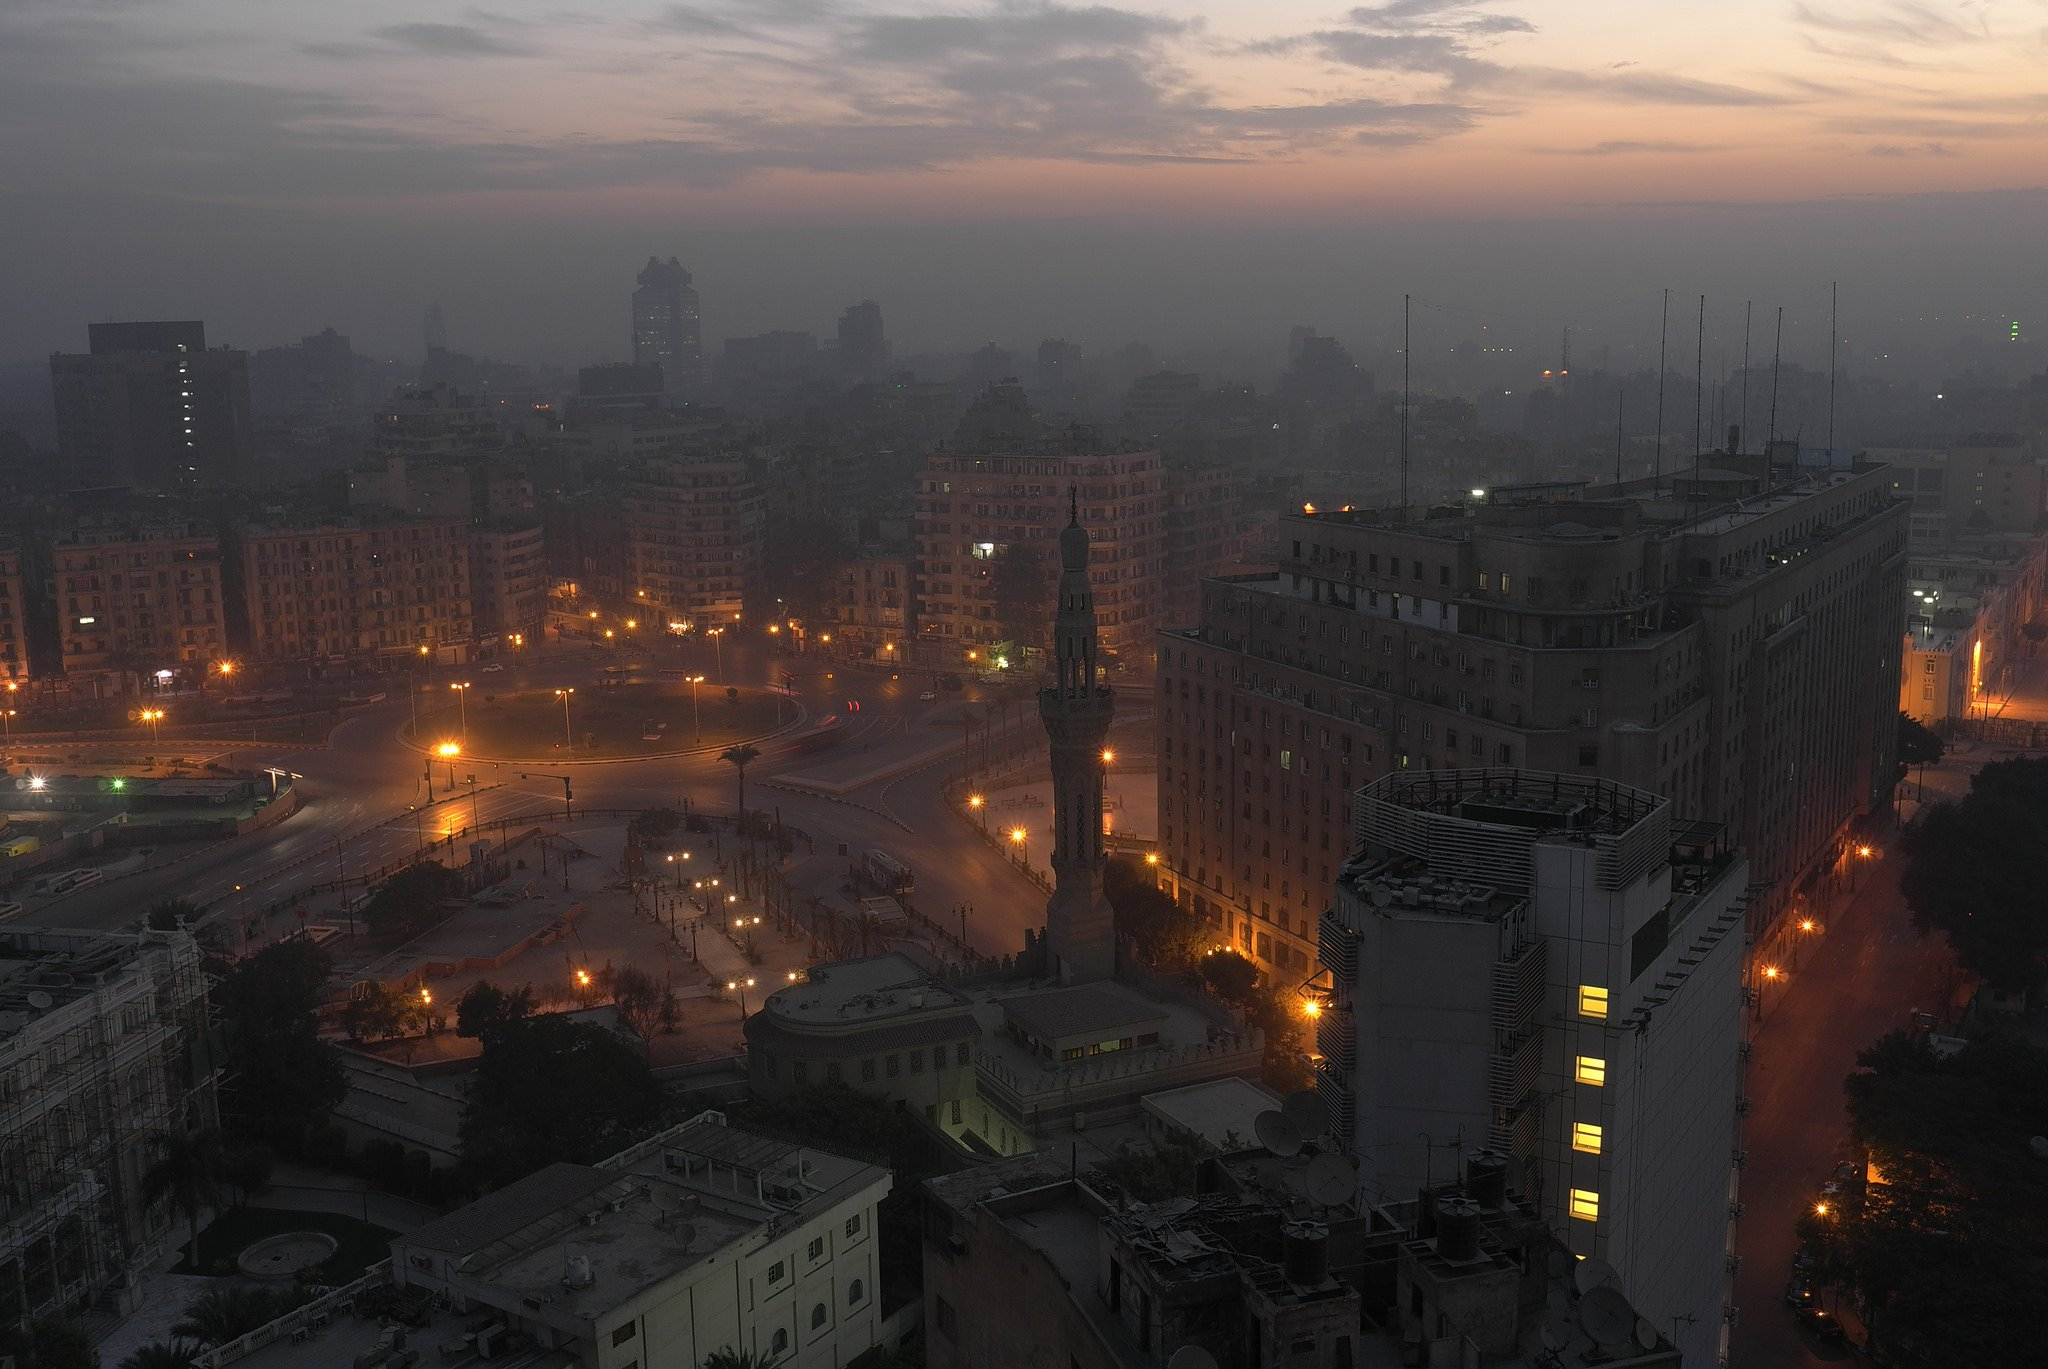 Tahrir Square. Photography by Frank Schulenburg.